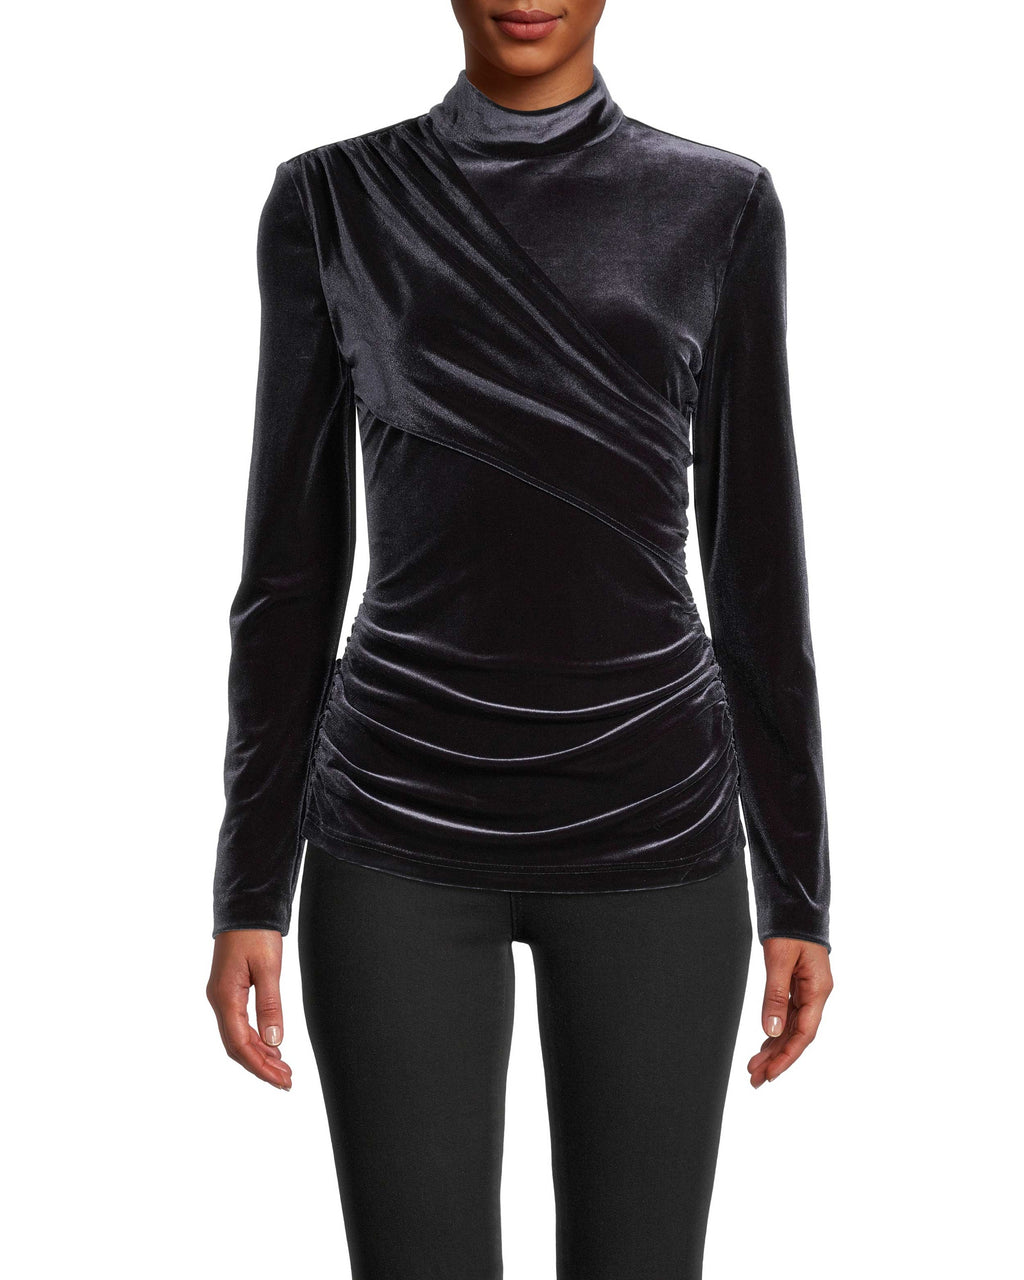 CT18477 - OPEN BACK TURTLENECK TOP - tops - blouses - Perfect for colder date nights, this subtly sexy top features a flattering faux wrap front and an open back. Crafted from luxurious, soft velvet. Add 1 line break Stylist tip: Style with a leather jacket and black jeans.